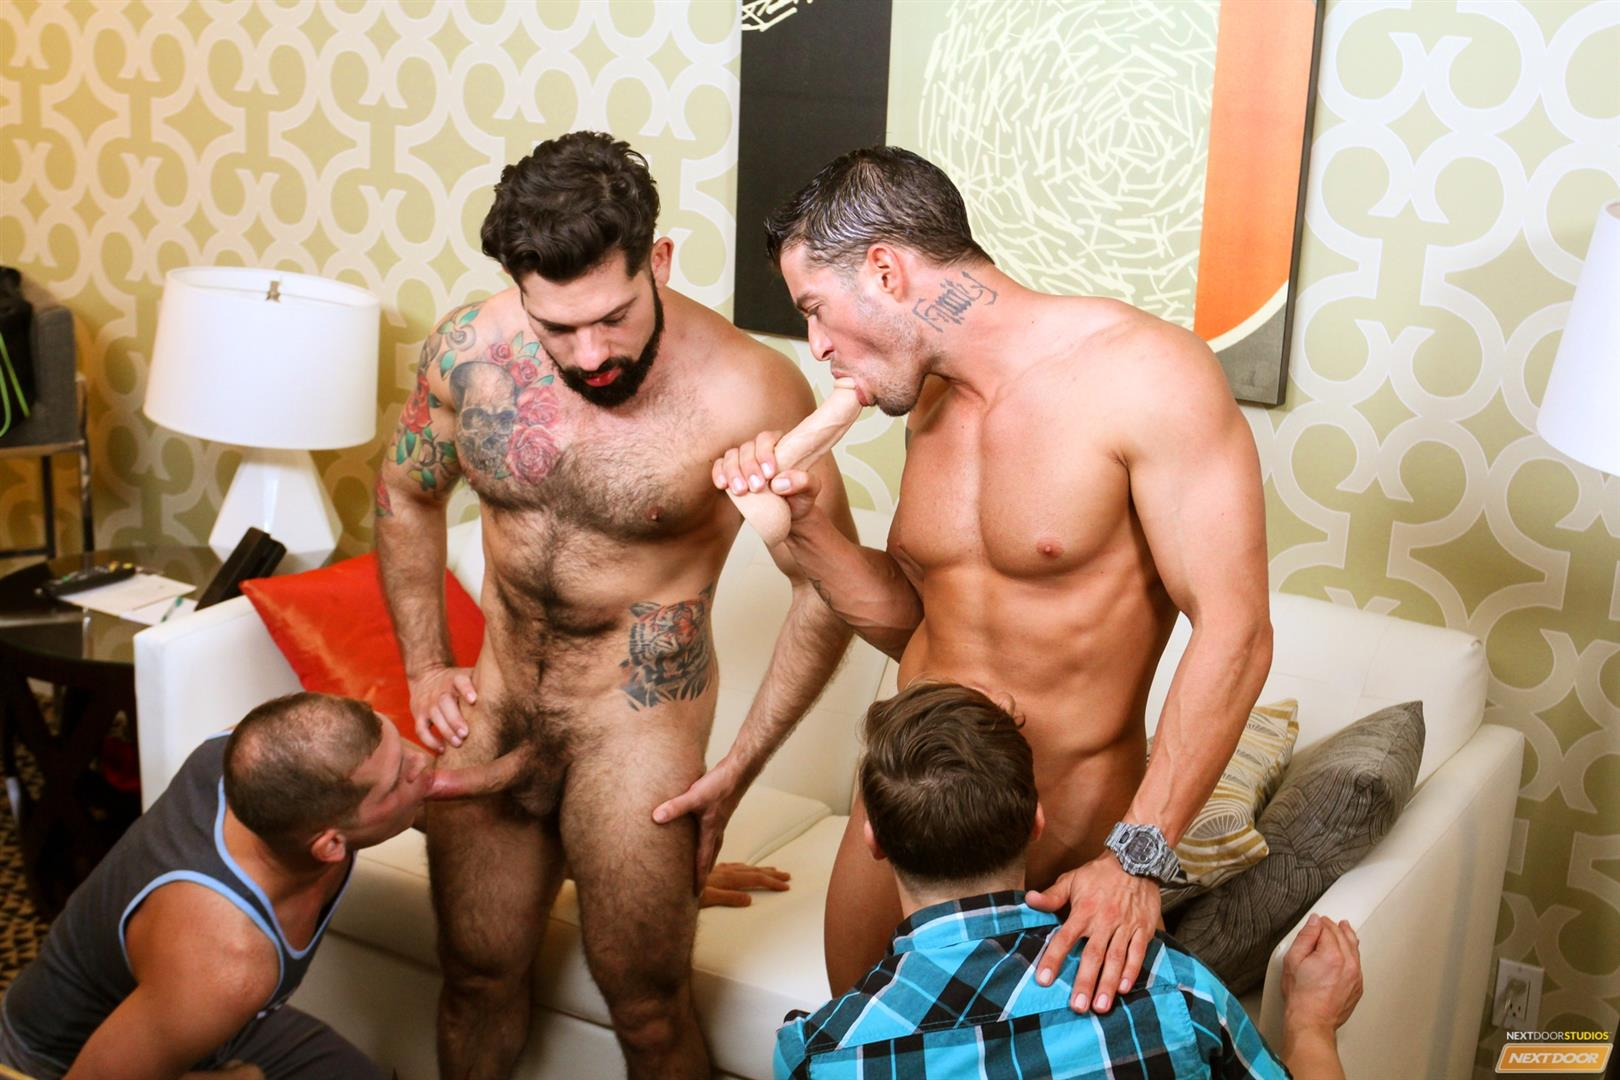 Cody-Cummings-and-Tyler-Morgan-and-Alessandro-Del-Torro-Cock-Sucking-Lessons-Amateur-Gay-Porn-11 Cody Cummings Gives The Boys Cock Sucking Lessons